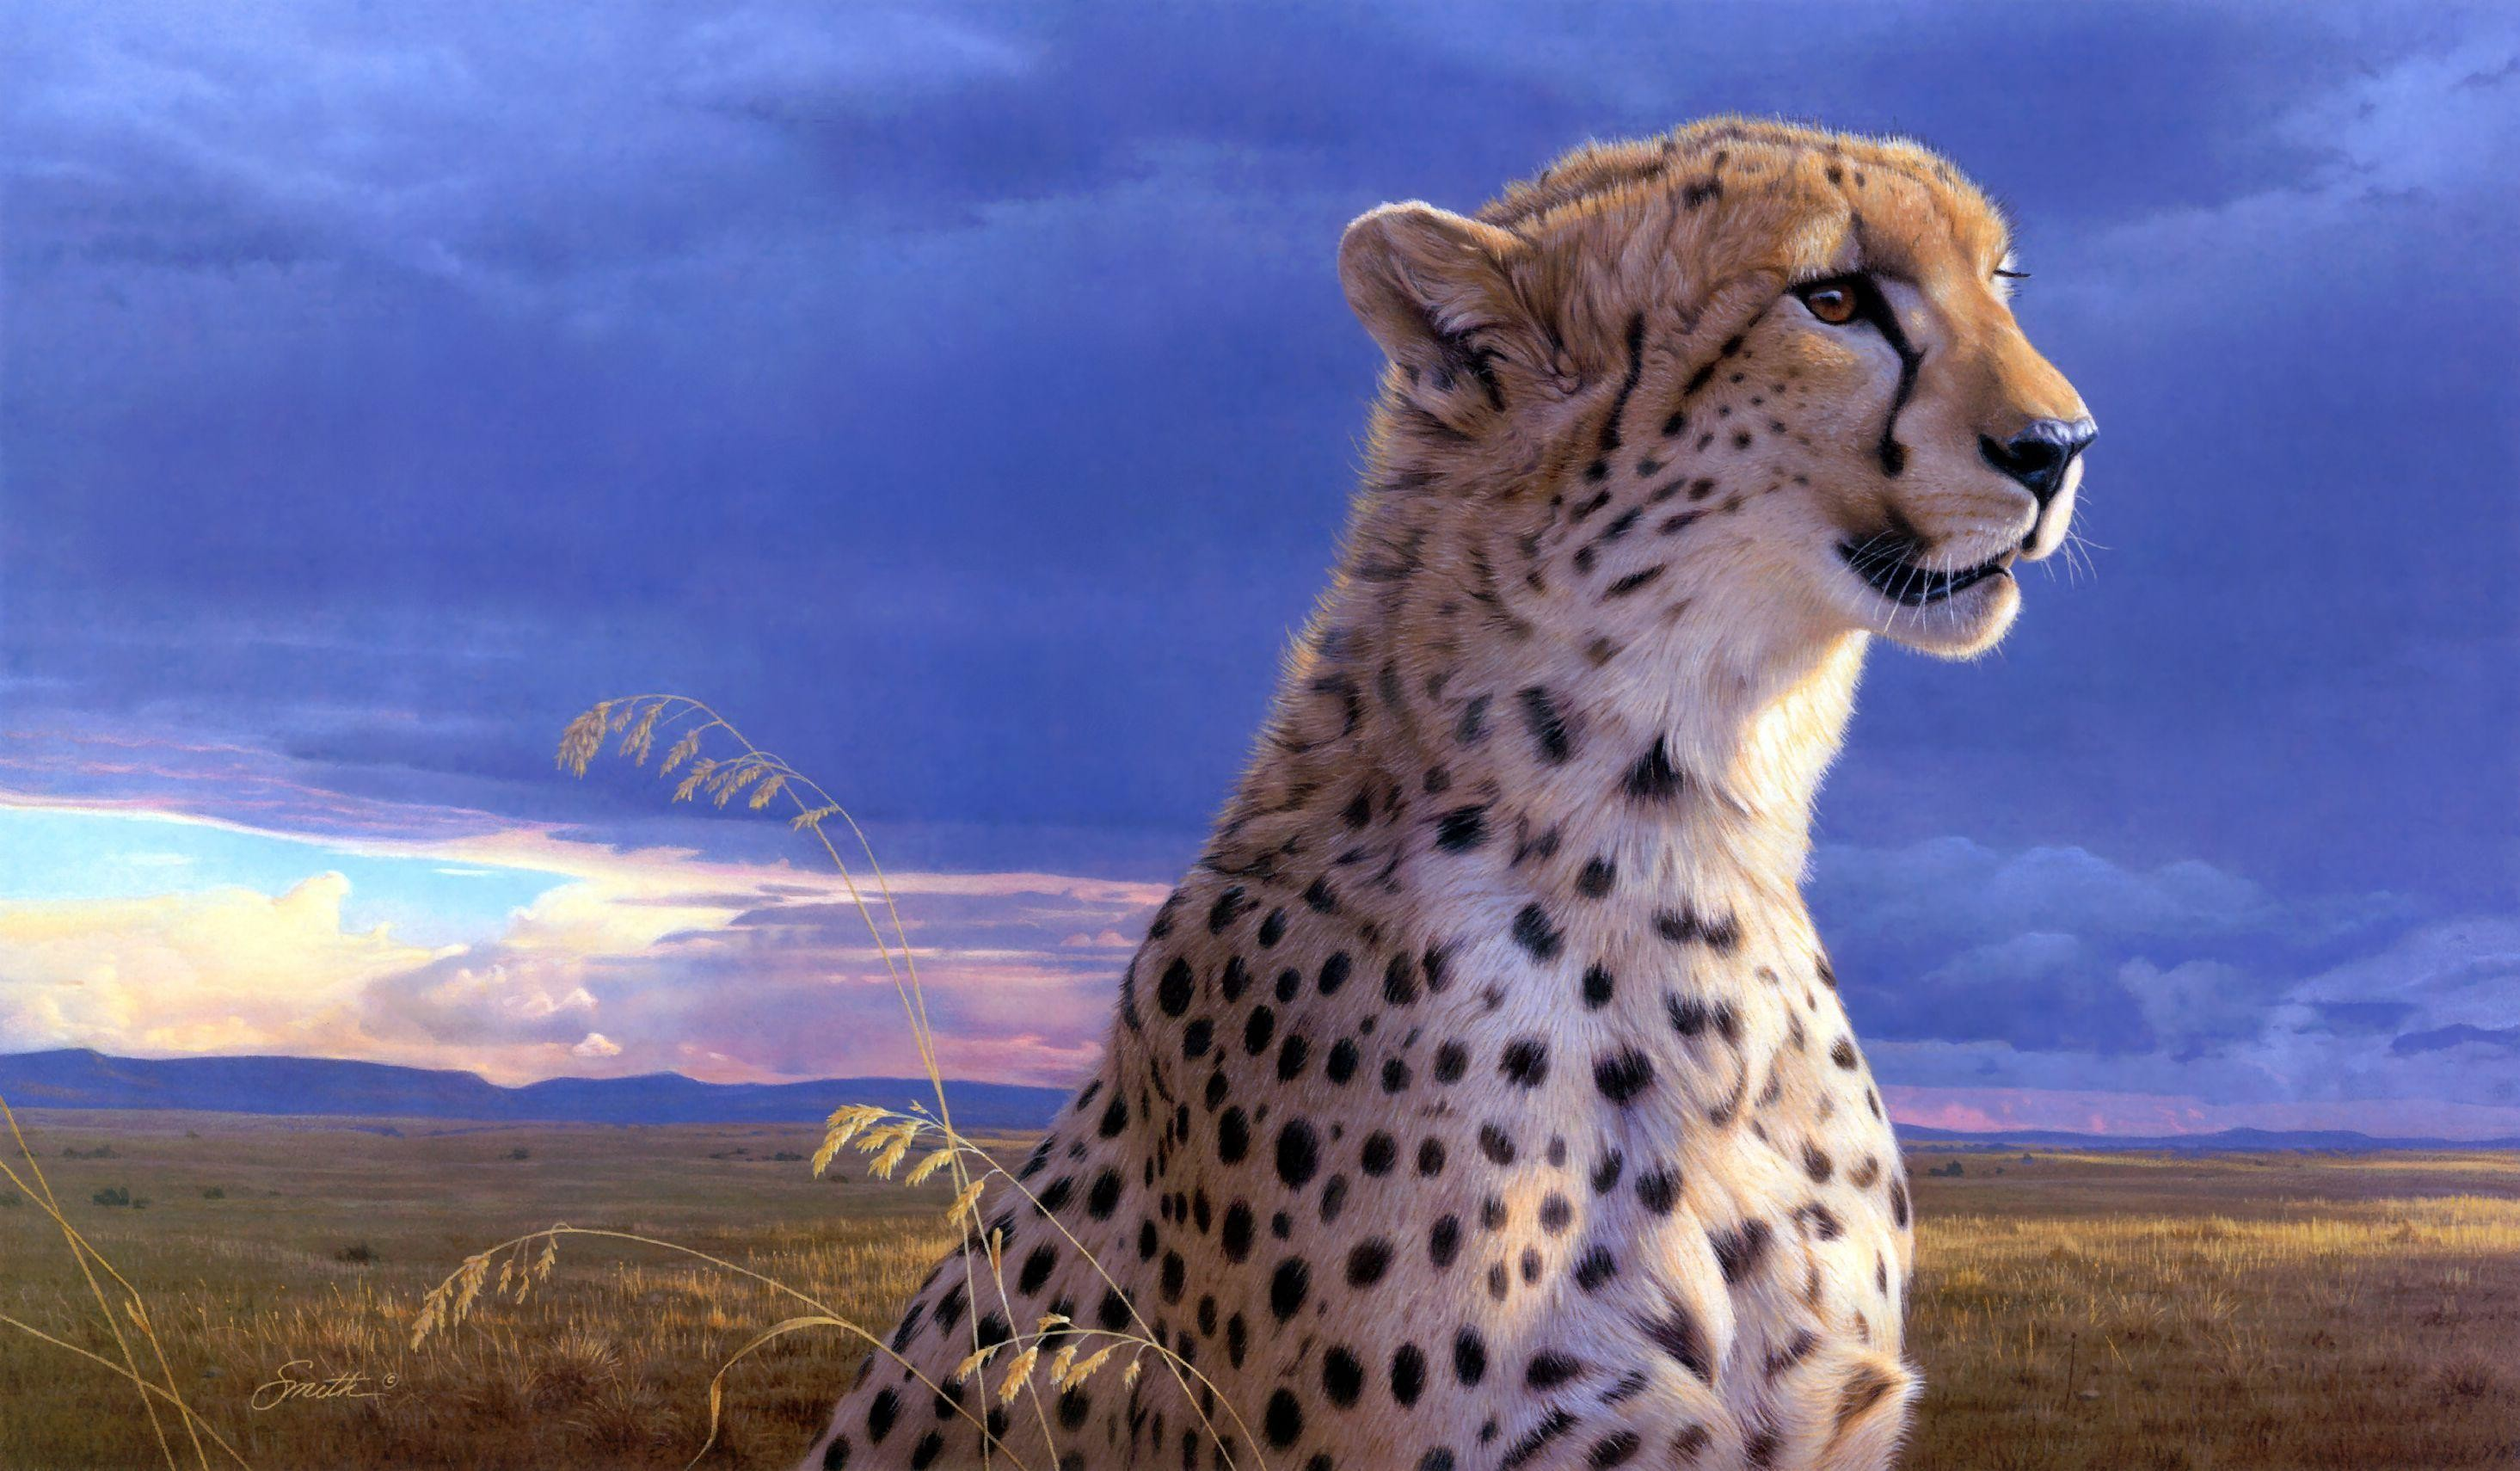 Res: 2930x1710, 226 Cheetah Wallpapers | Cheetah Backgrounds Page 5